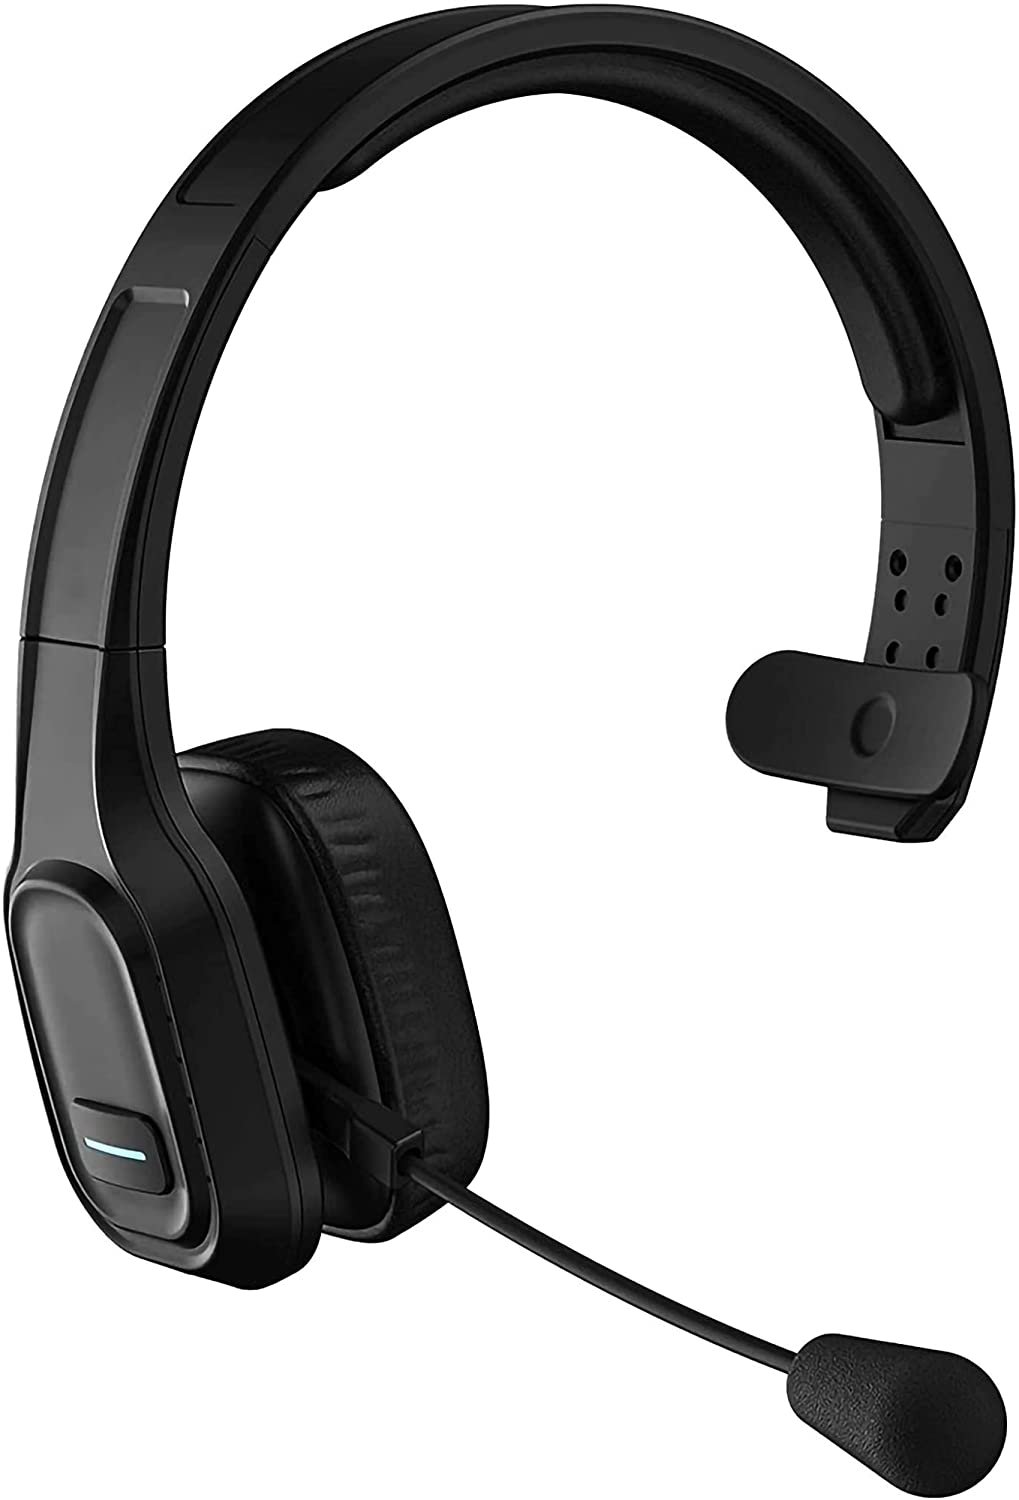 PRO Wireless Headset Works discount for ZTE Chicago Mall V5.0 with Dual Boom Bl NX405H